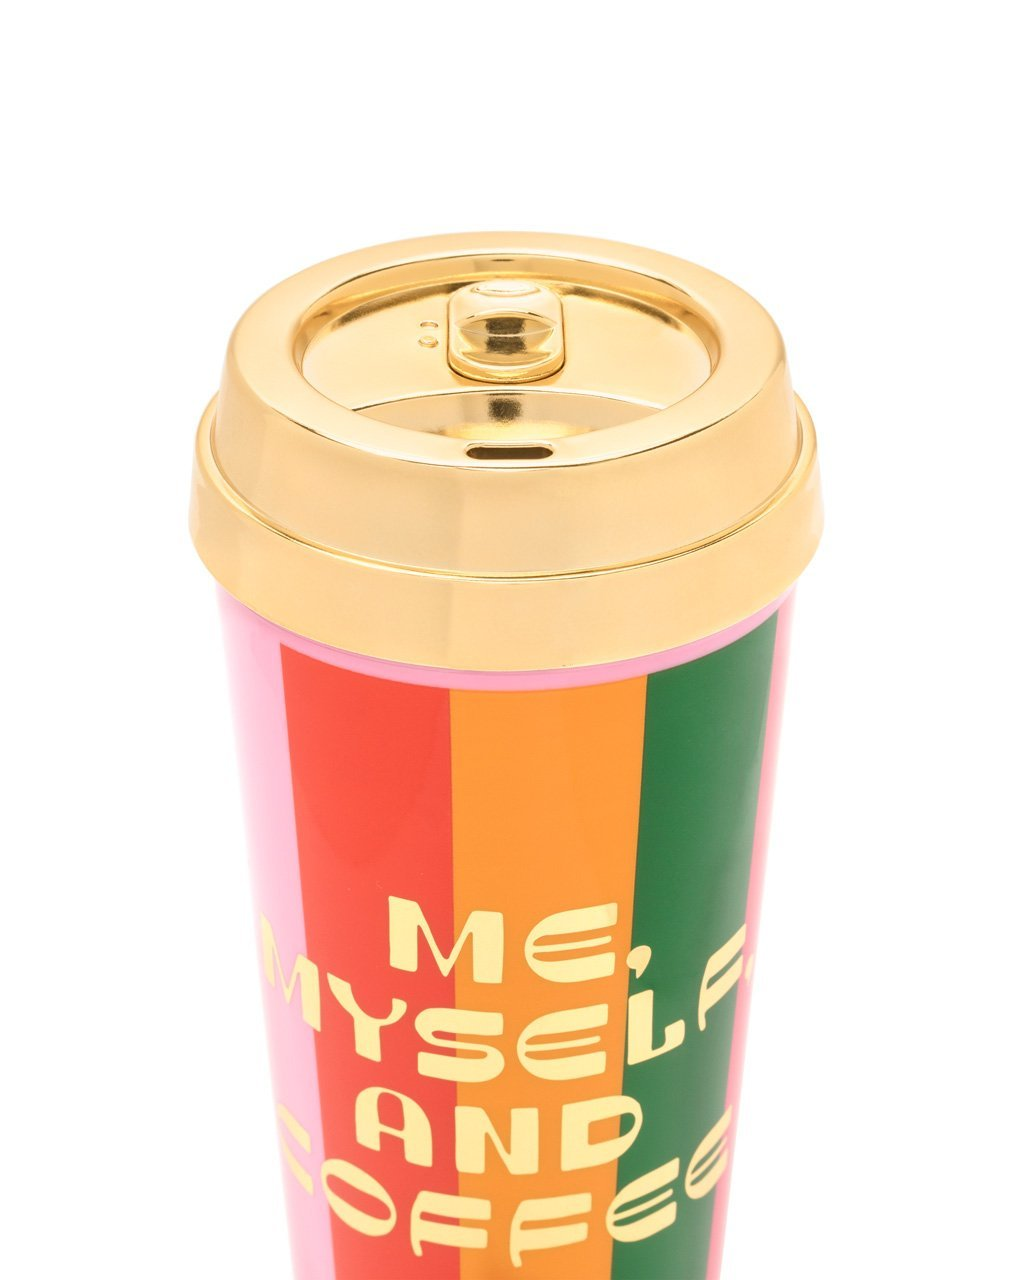 16oz thermal with gold electroplated lid